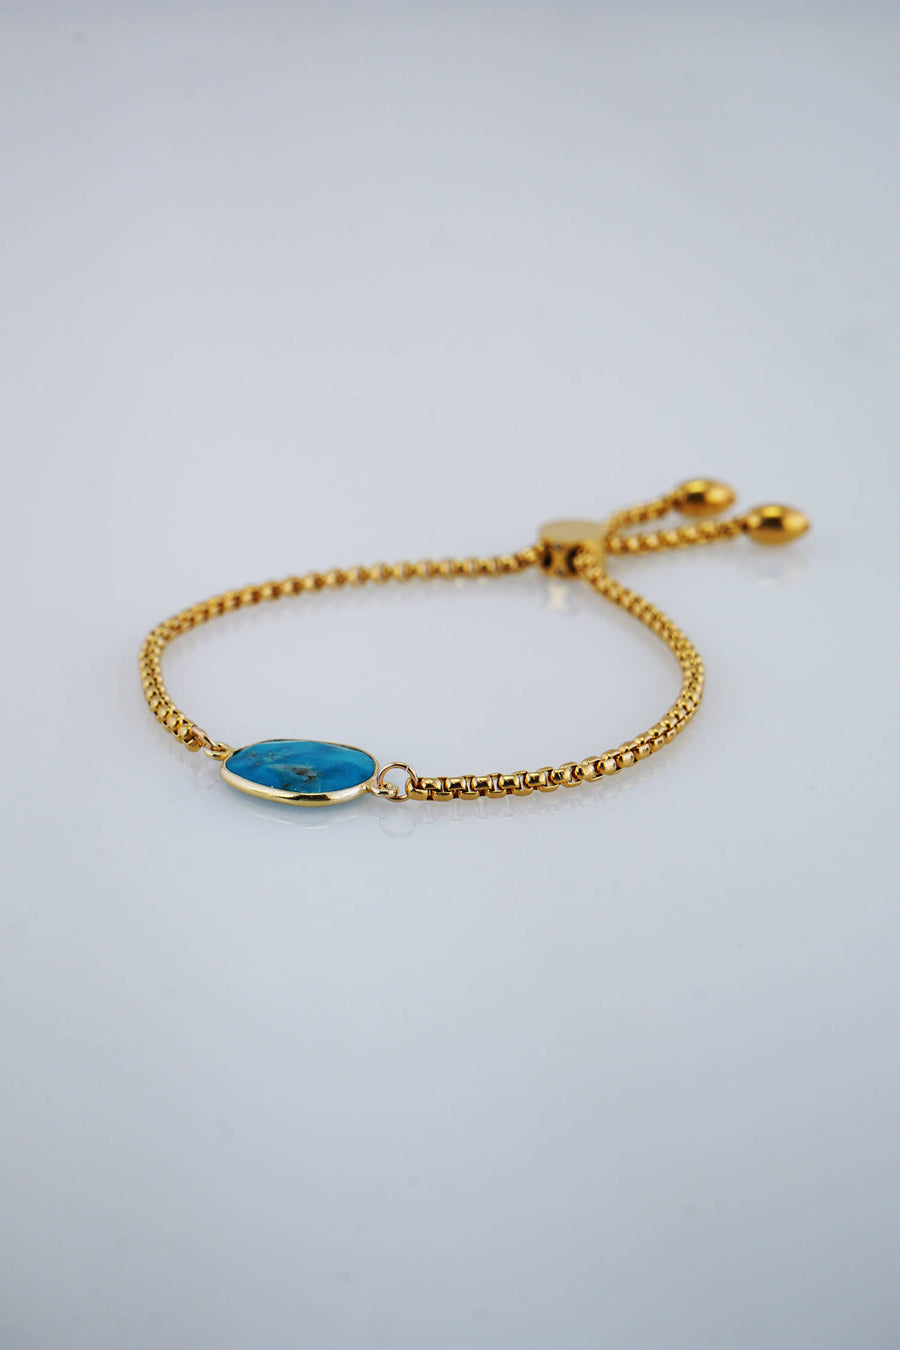 December Birthstone Bracelet, Turquoise Gemstone Bracelet, Adjustable bracelet, Gold Designer Bracelet, Bezel set bracelet, Bridesmaid Gift